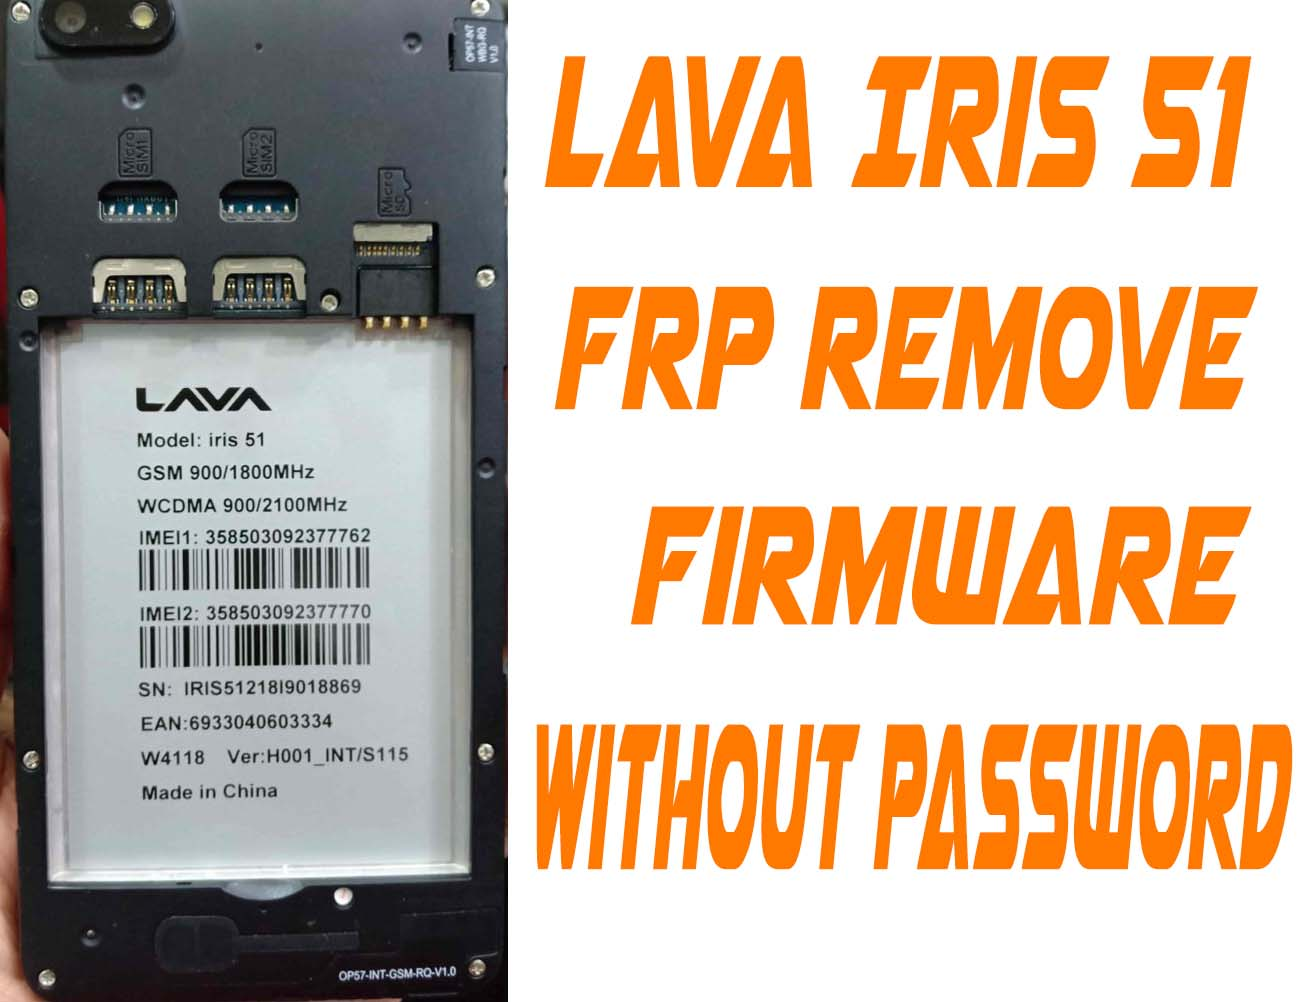 Lava Iris 51 Frp Remove Reset File Without Password